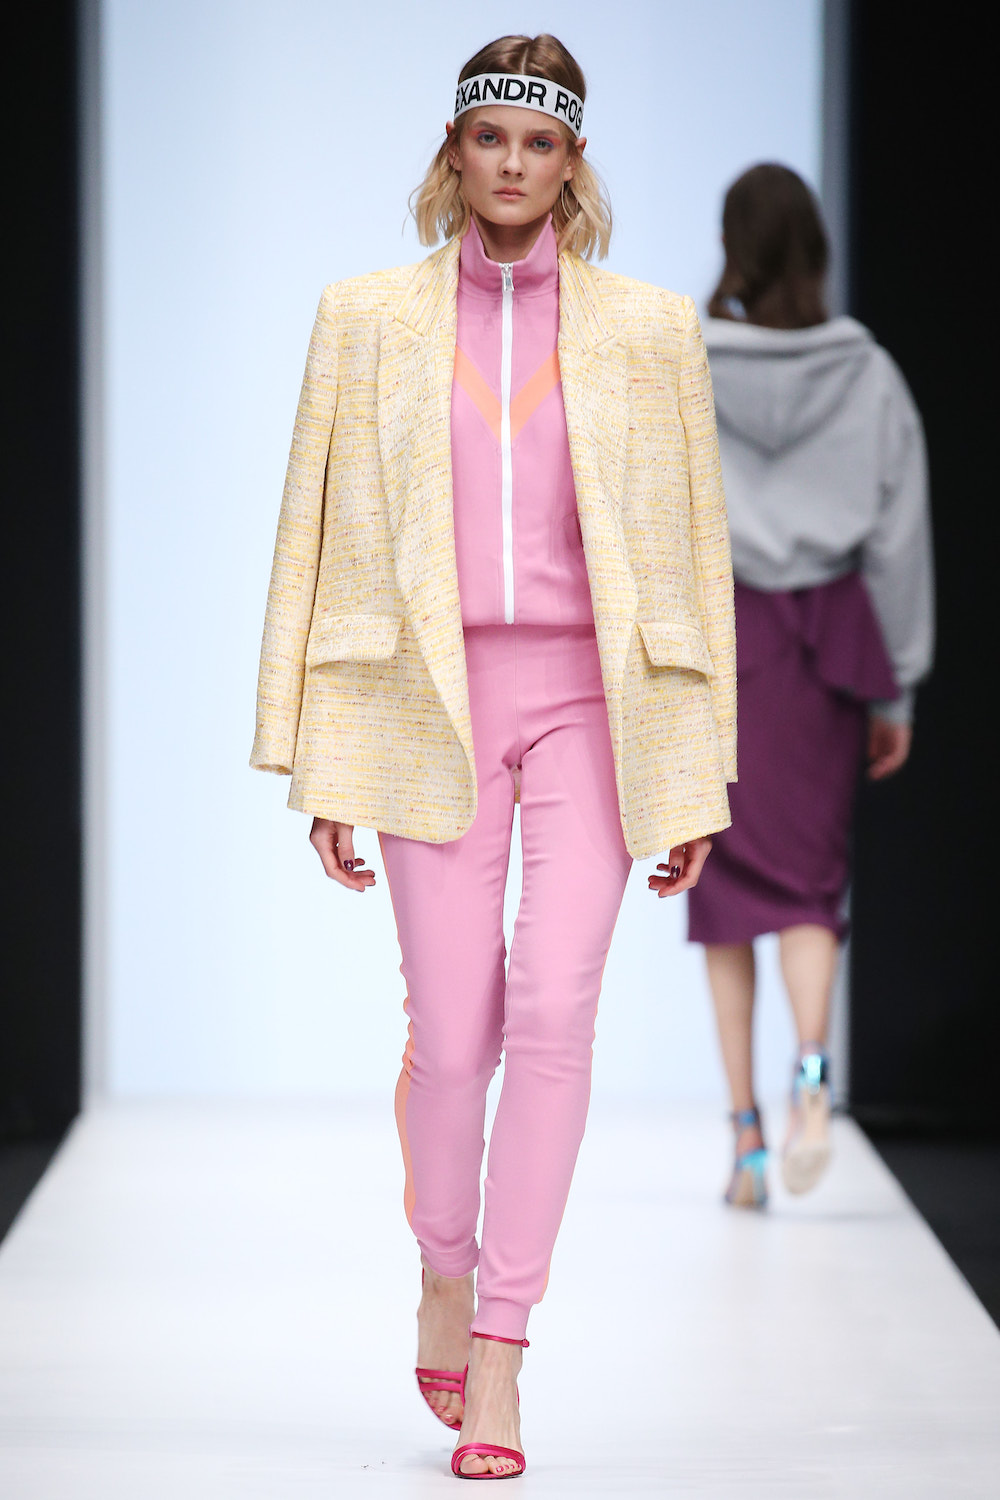 A look from Alexandr Rogov's presentation